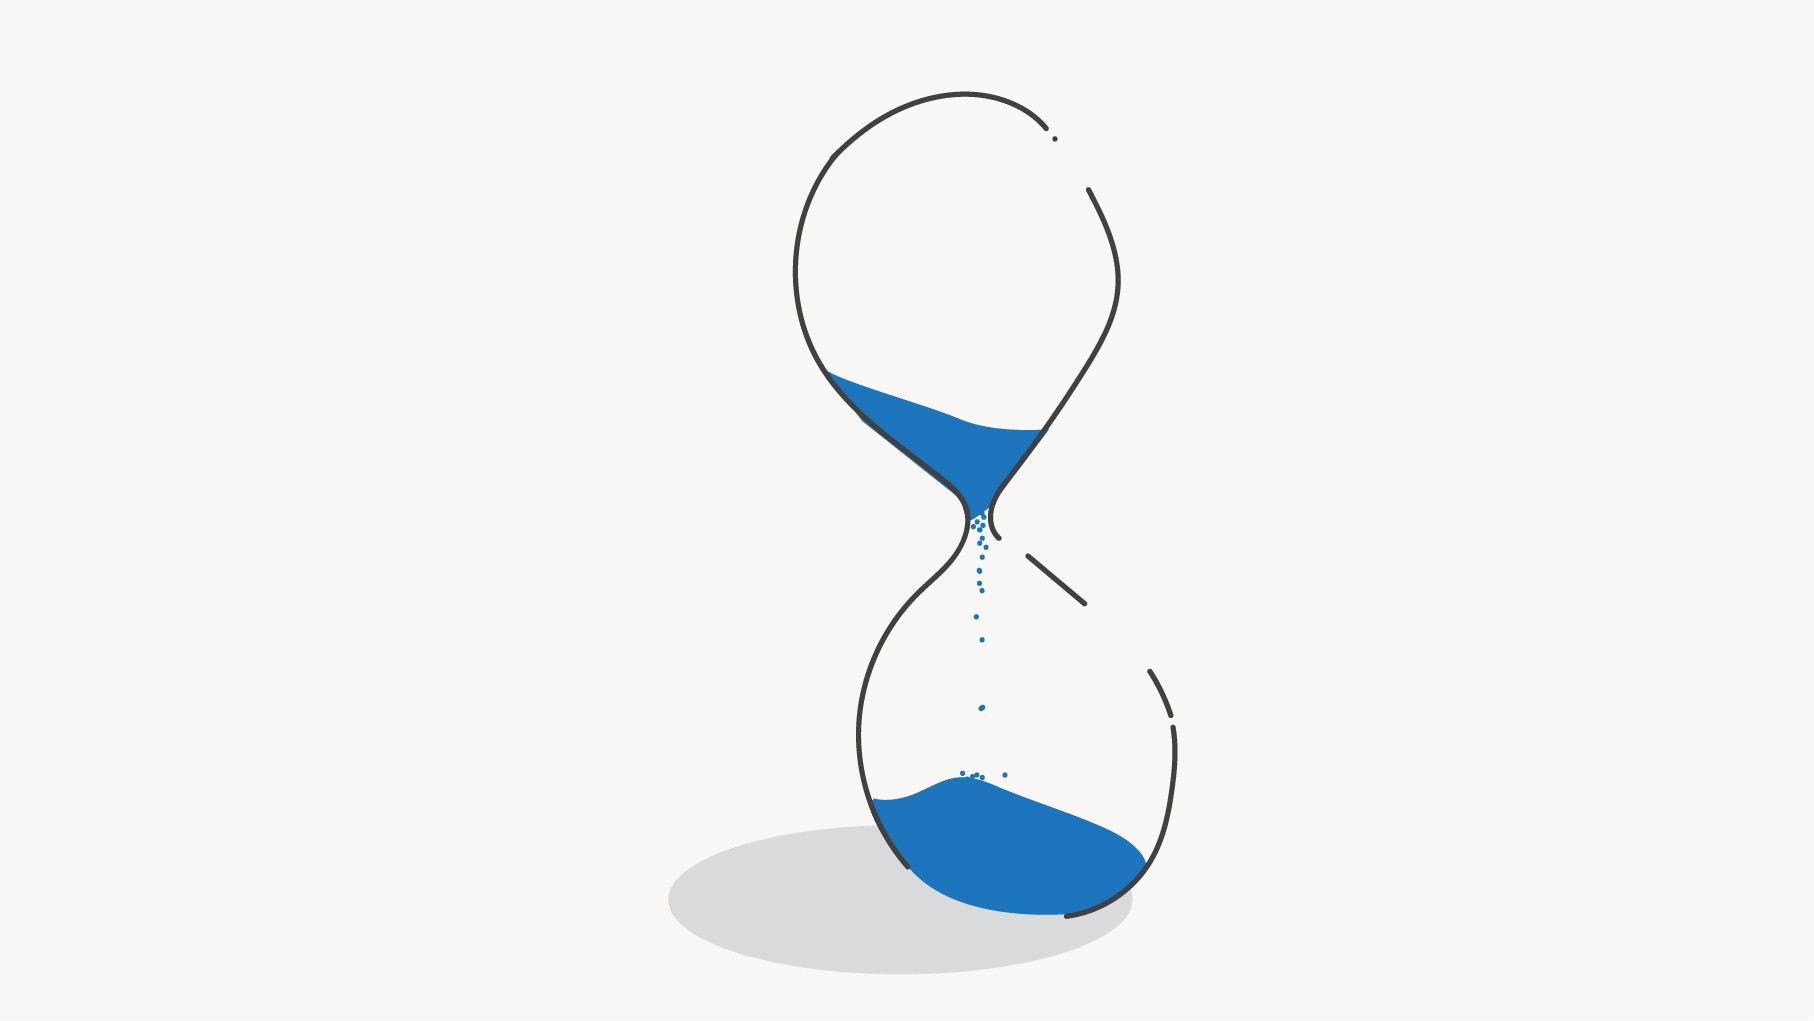 Illustration of an hourglass with blue sand sifting through it